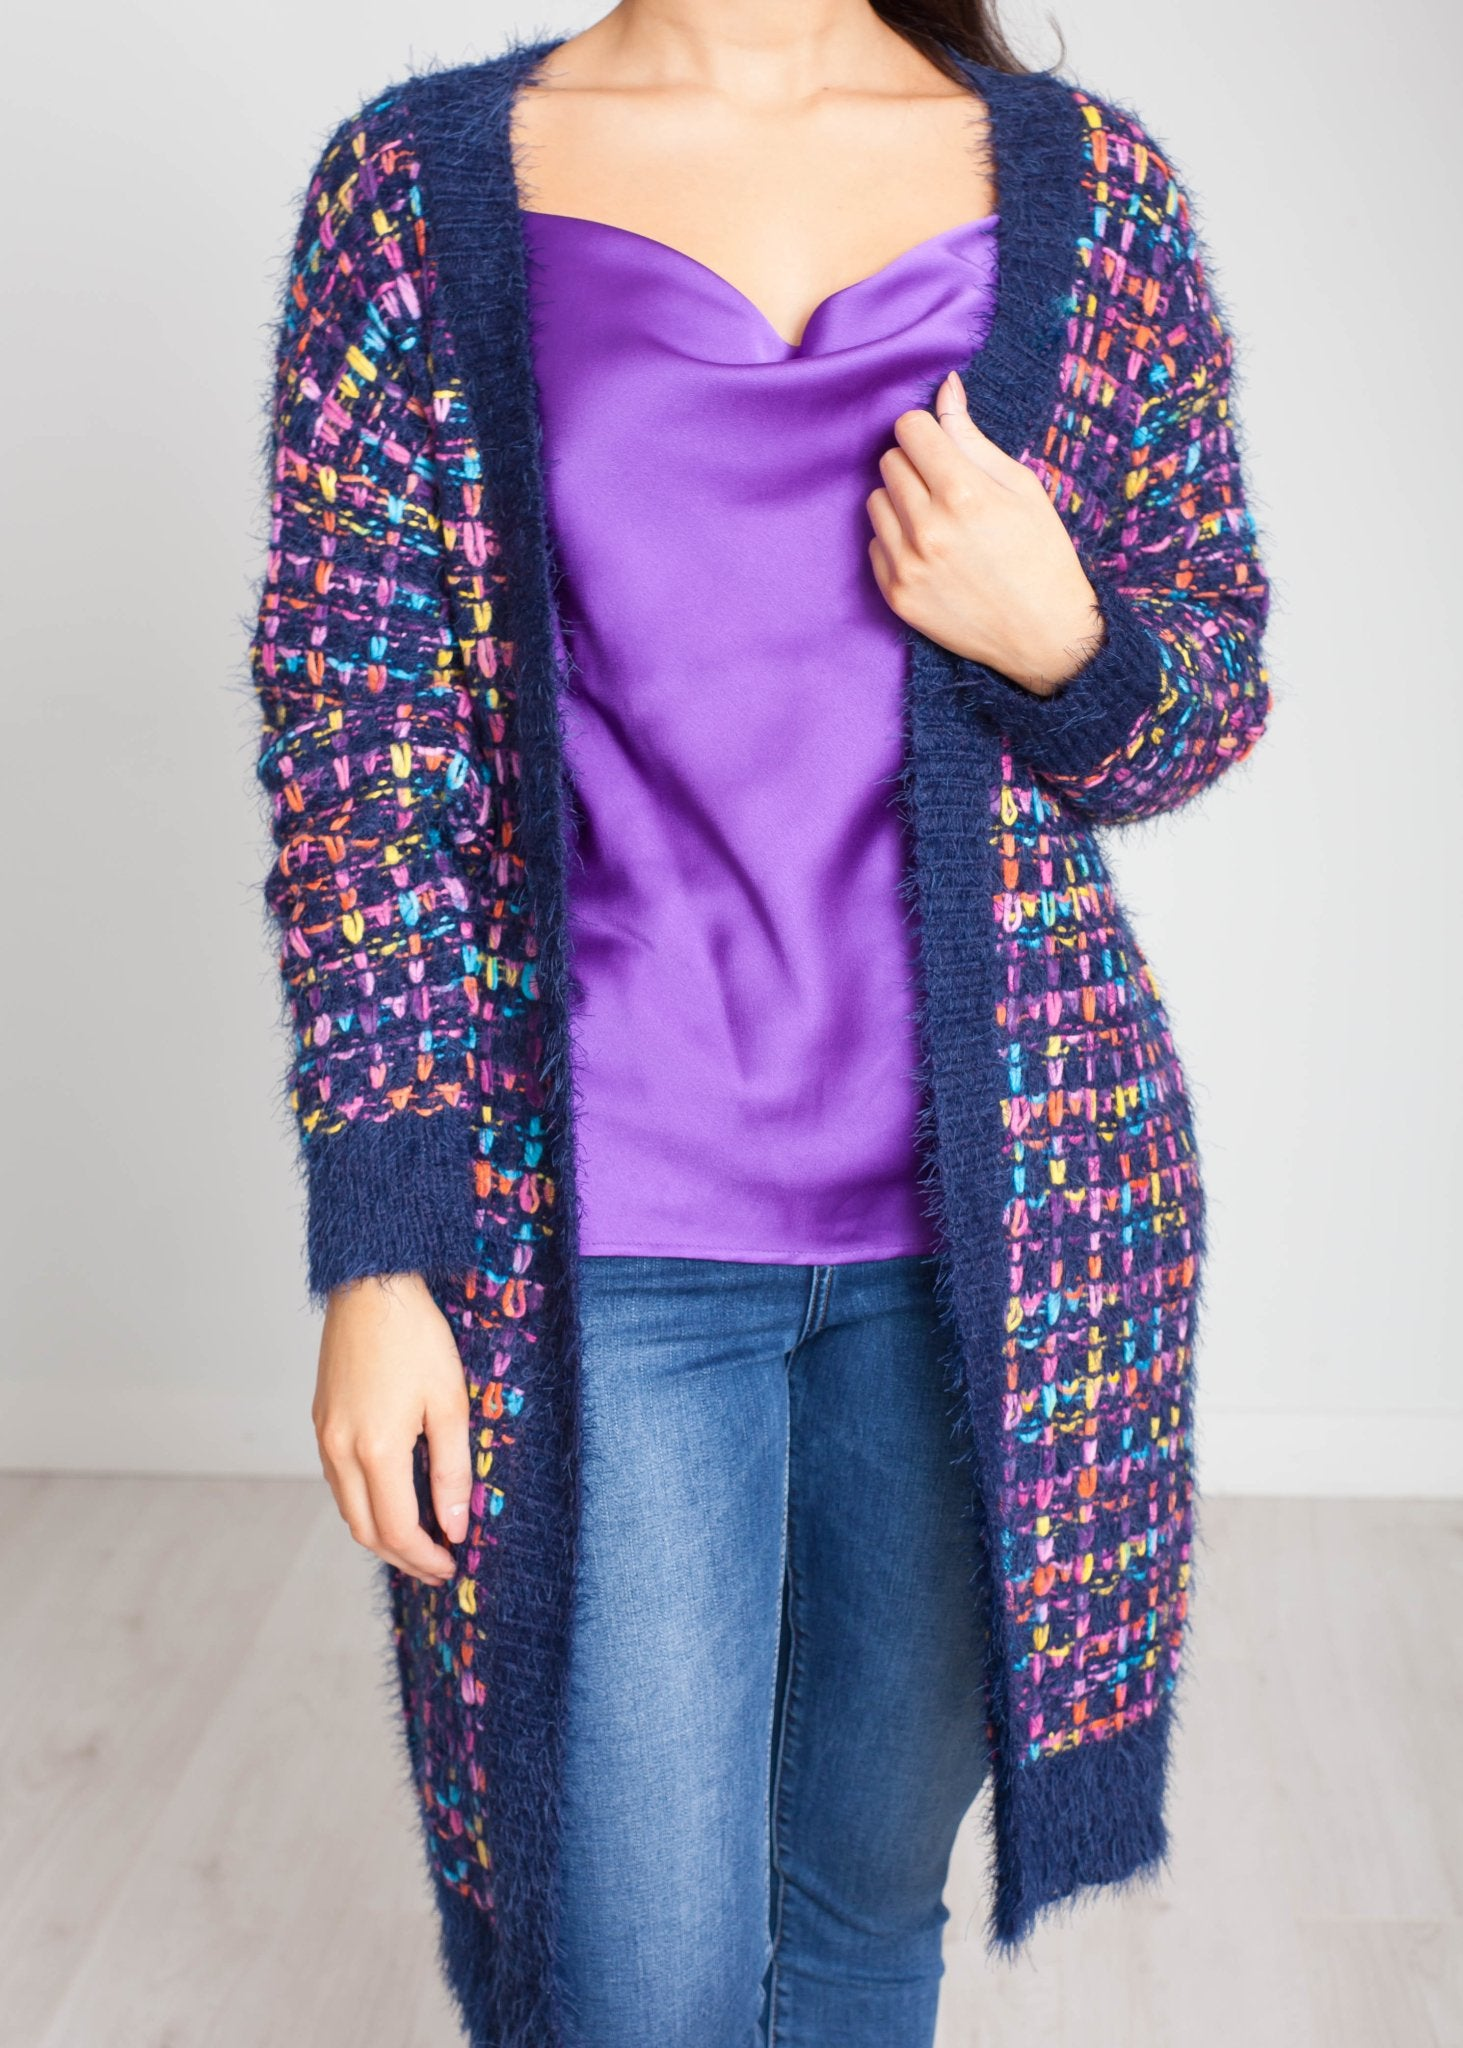 Sarah Cardigan In Blue Multi - The Walk in Wardrobe